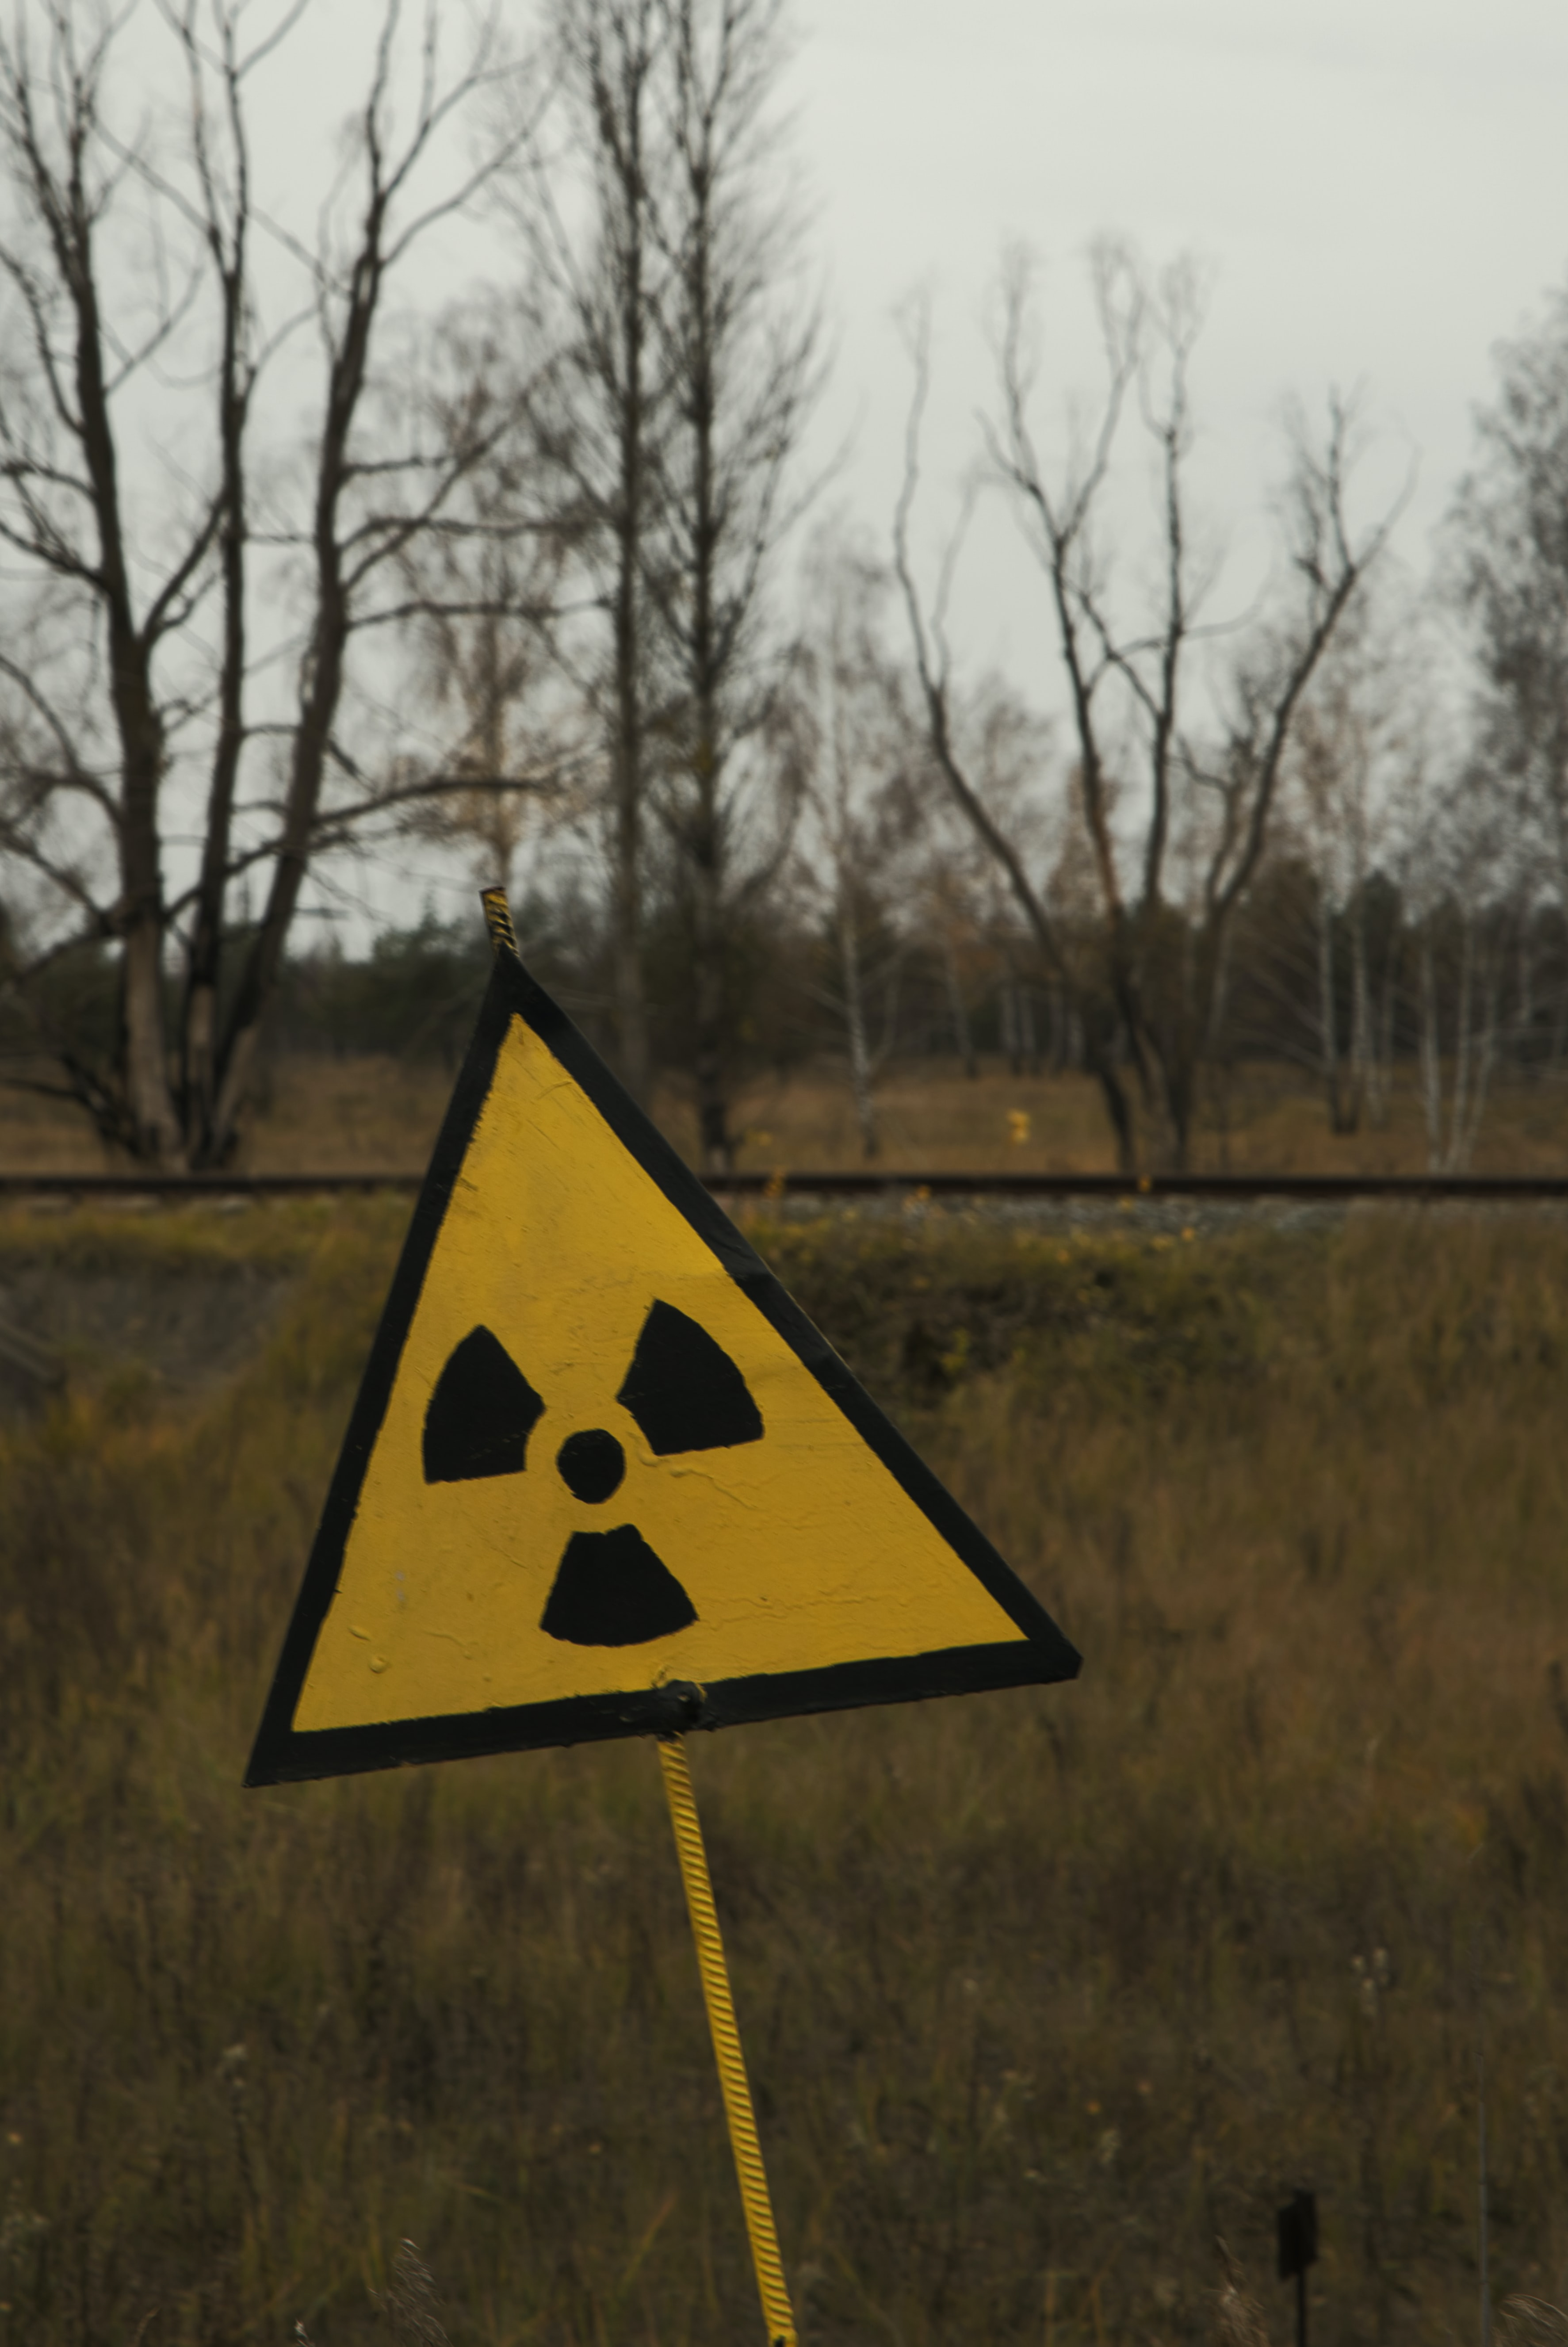 Weapons of Mass Destruction: Nuclear Terrorism and Nuclear Proliferation